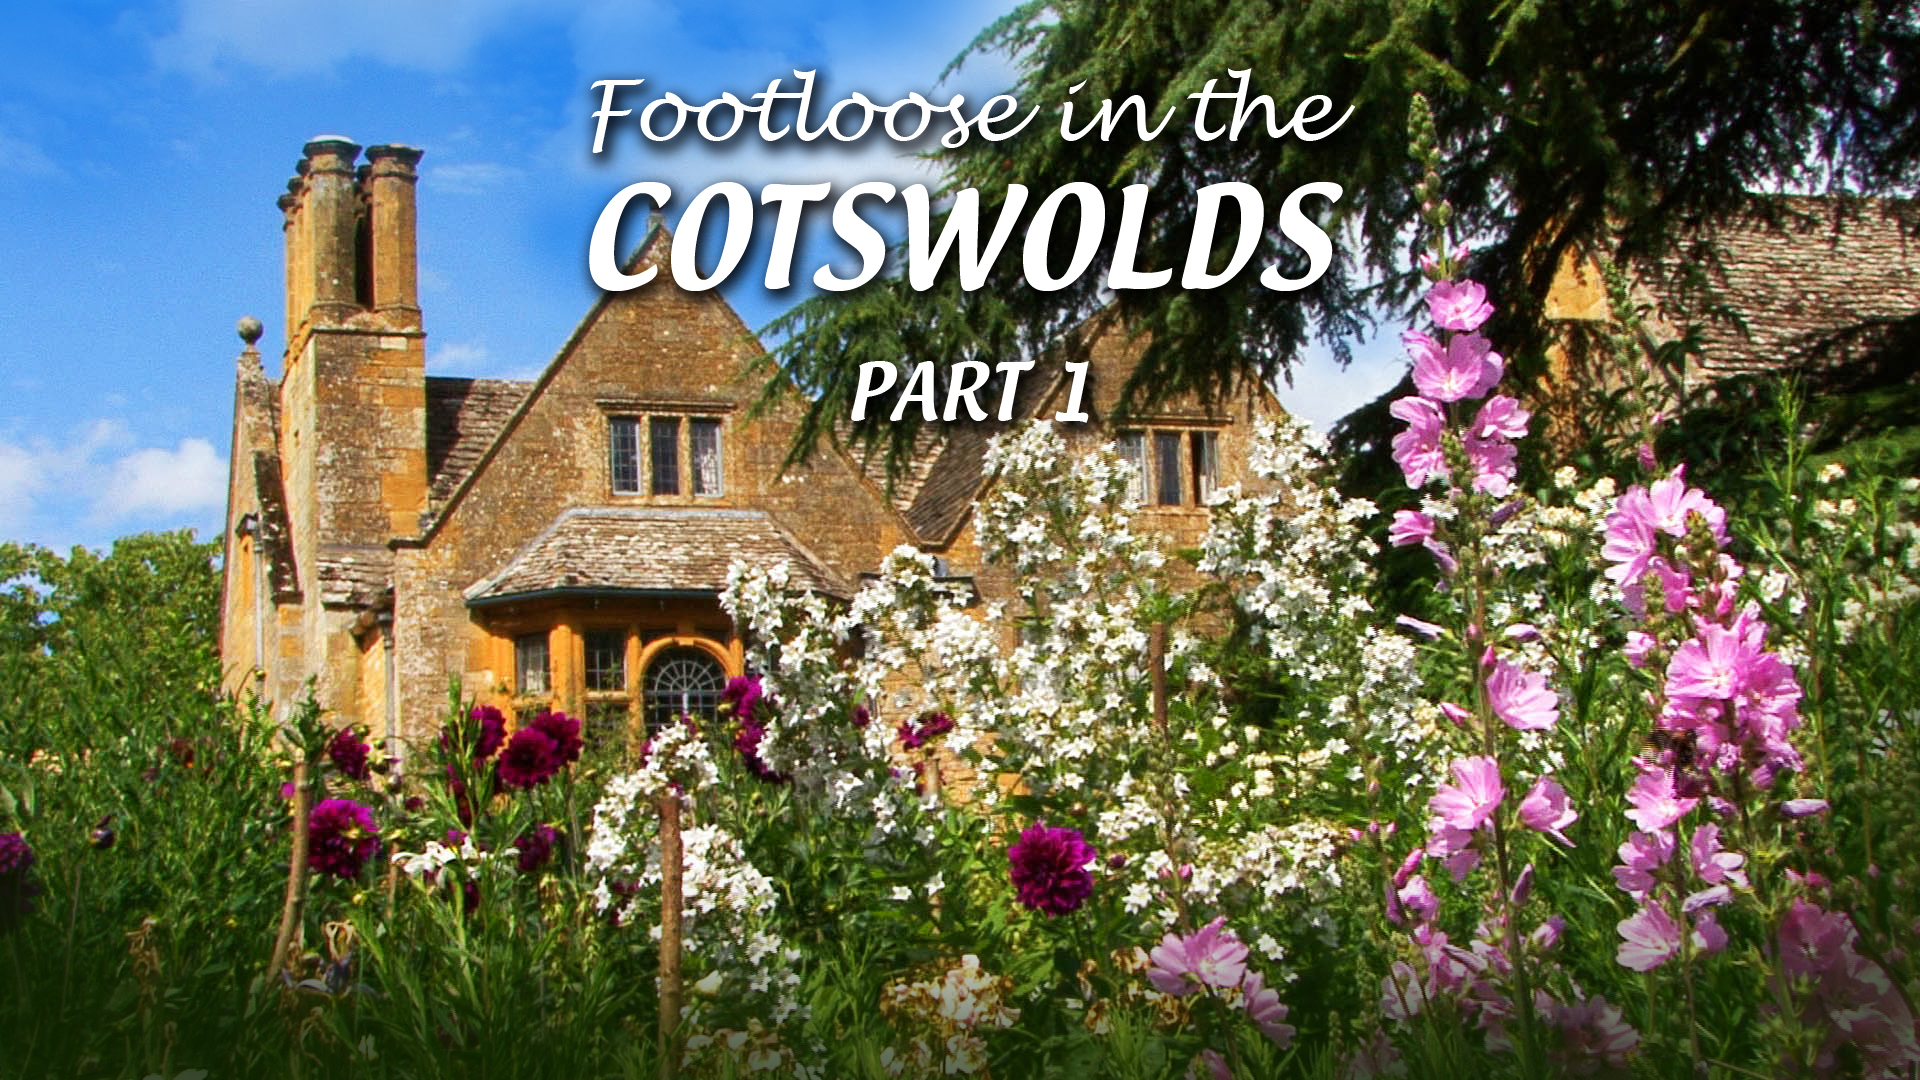 Footloose in the Cotswolds - Part 1